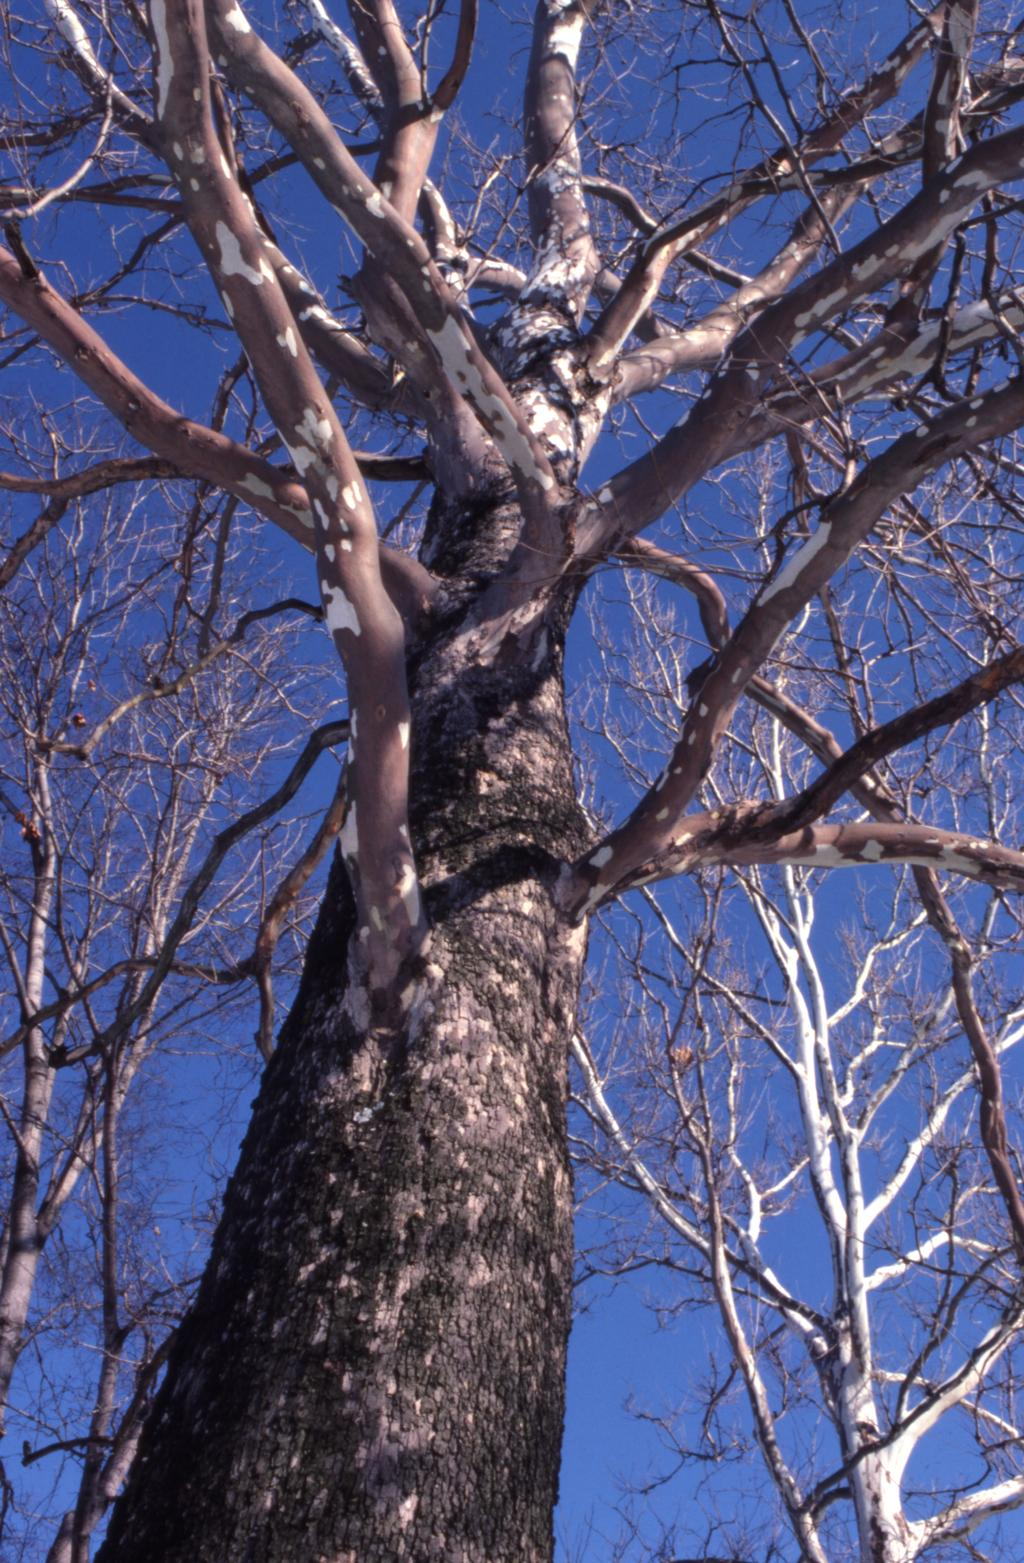 This photograph depicts a sycamore tree. The picture was taken at an angle so we are looking up and to the branches. In the picture you can see the tree's bark peeling and the bare branches.